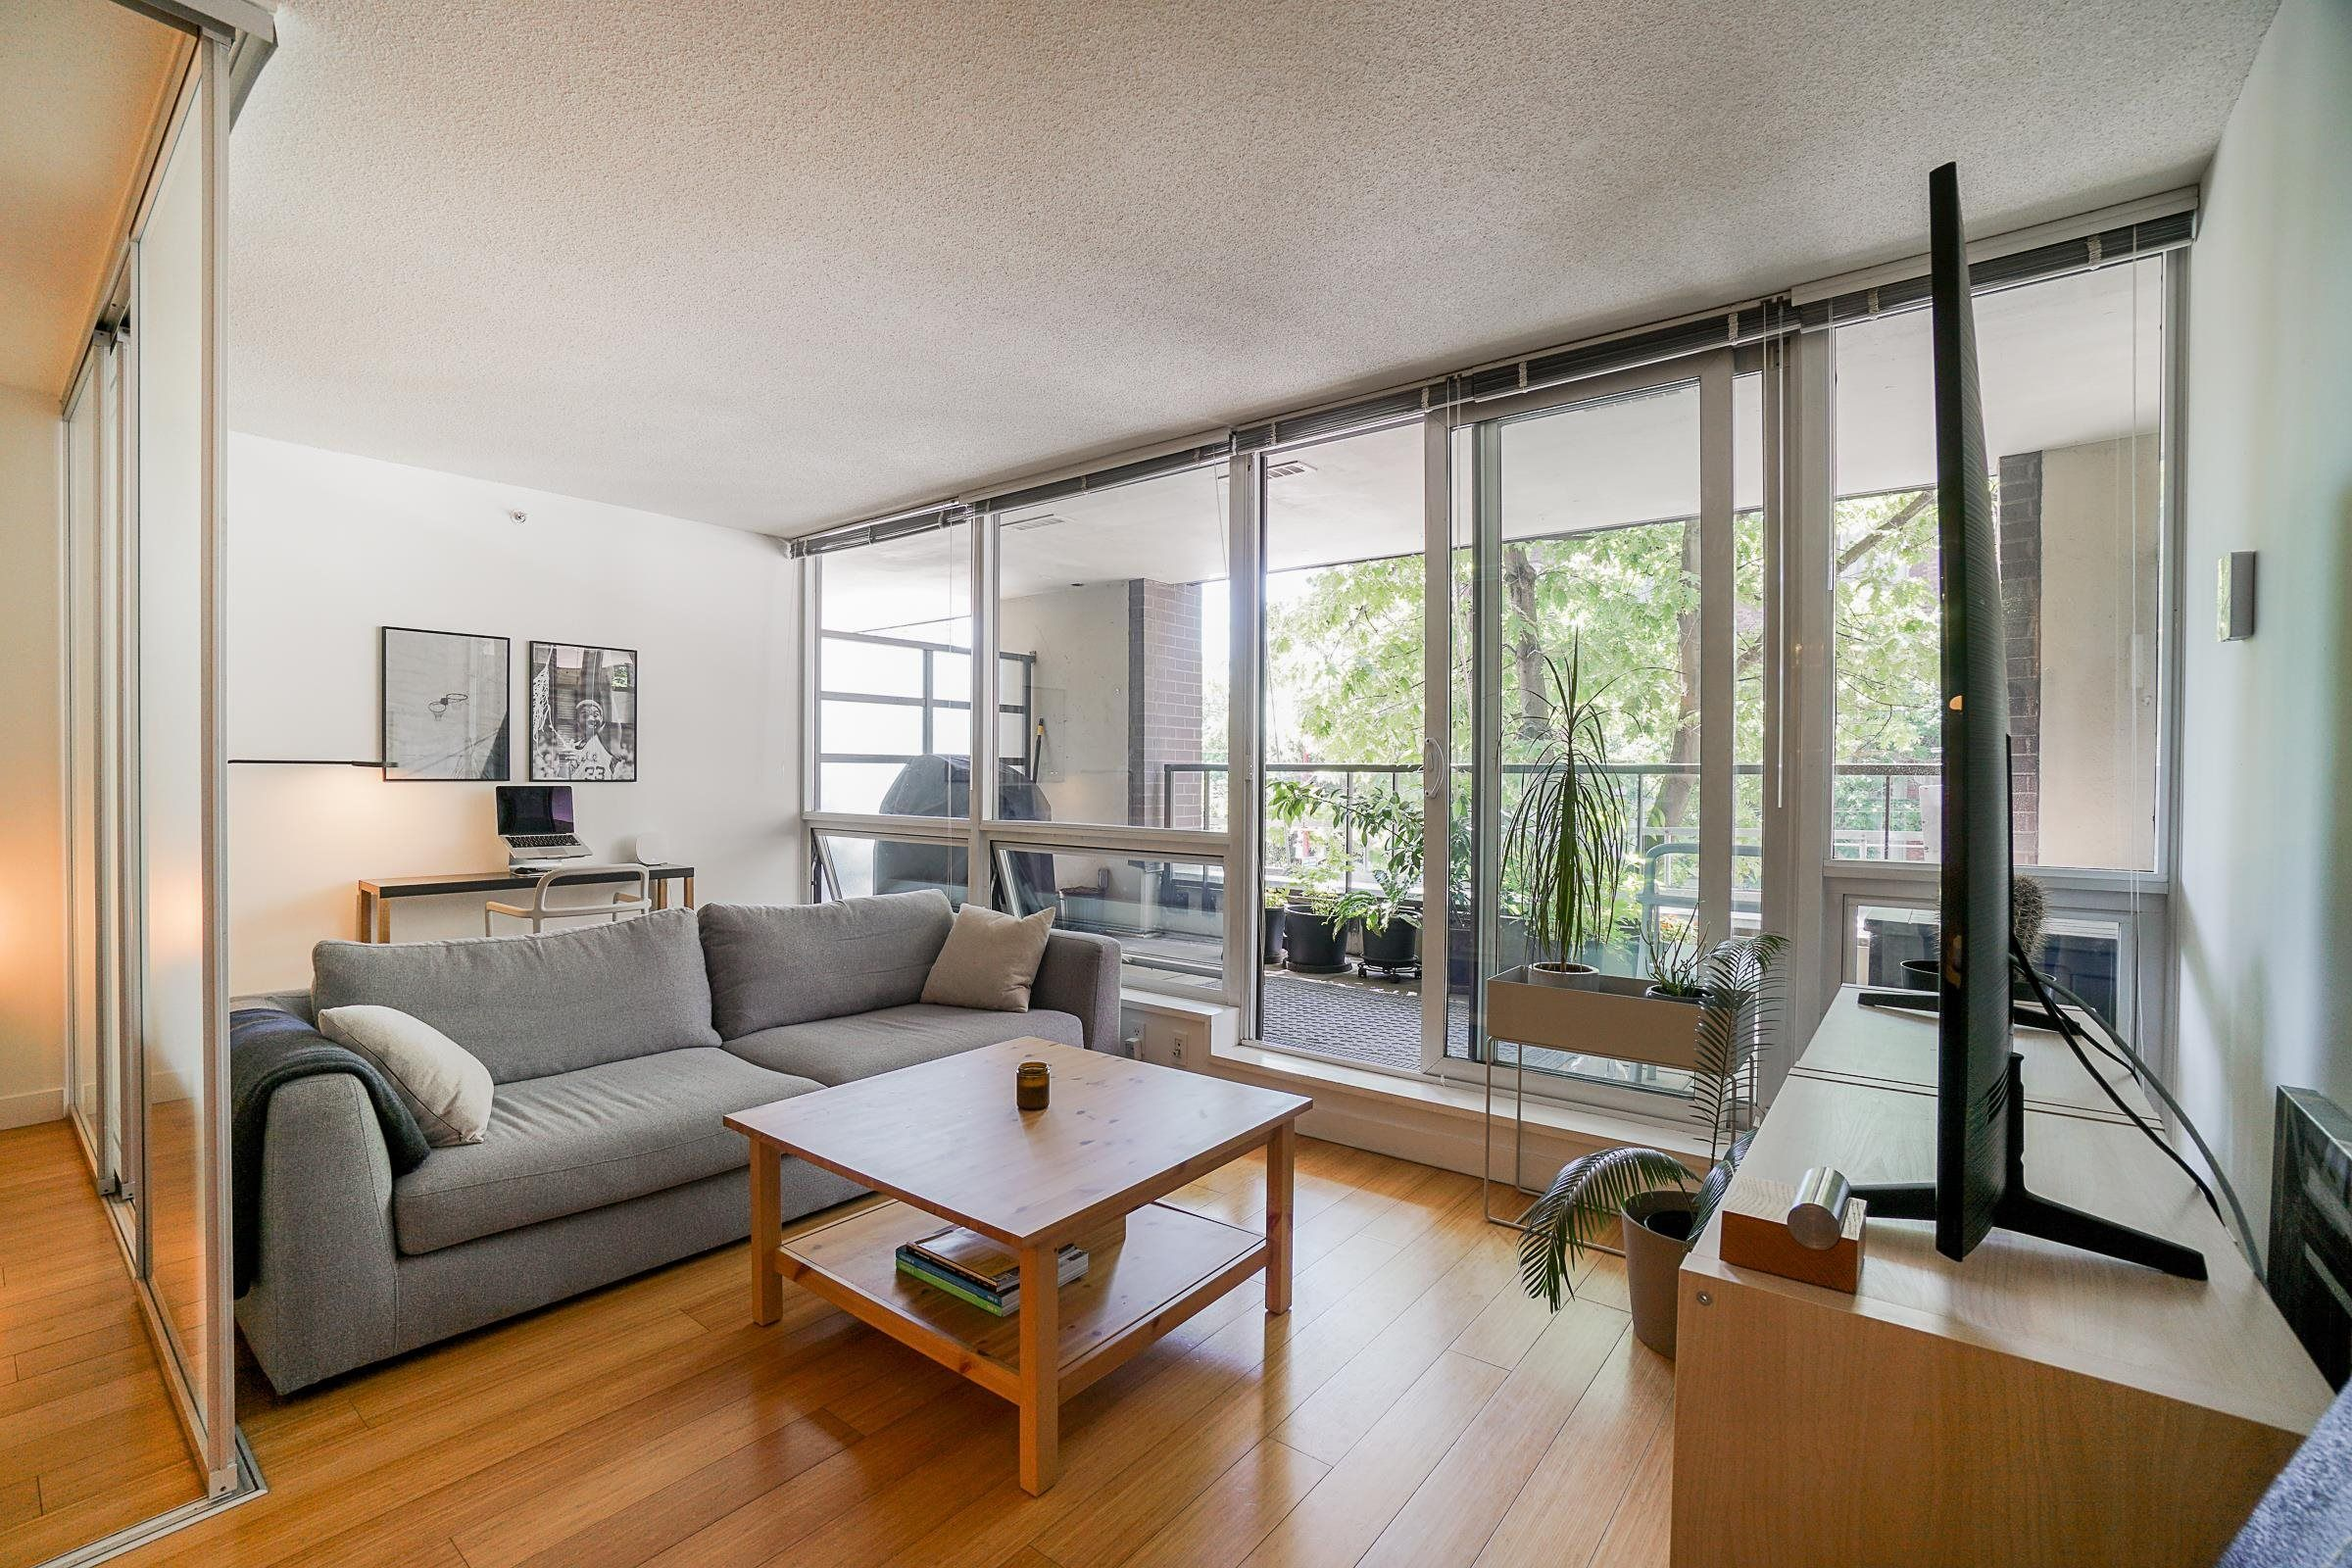 Main Photo: 204 718 MAIN Street in Vancouver: Strathcona Condo for sale (Vancouver East)  : MLS®# R2614760